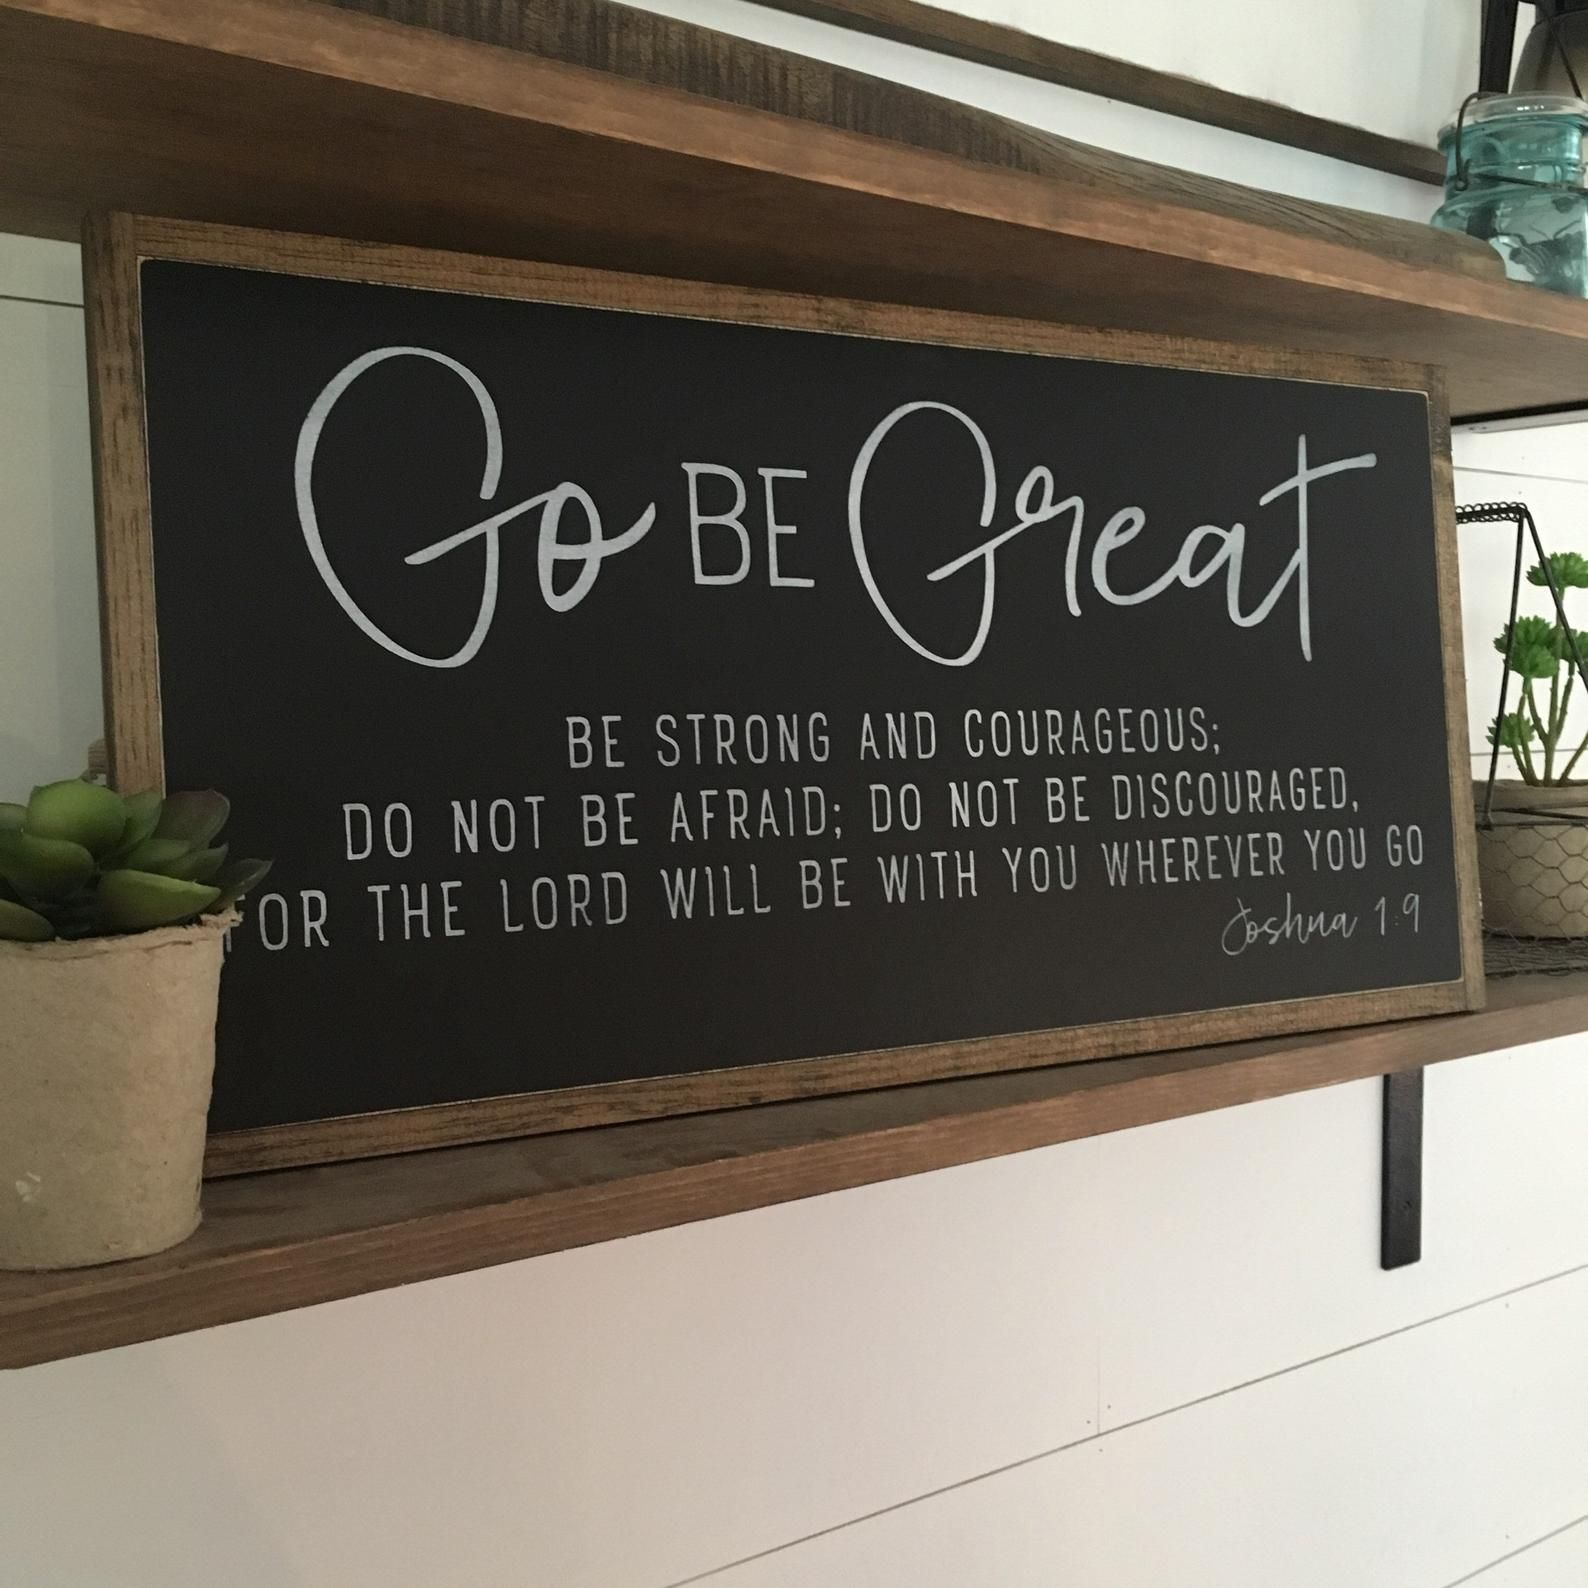 GO BE GREAT 1'X2' sign | Joshua 1:9 | distressed rustic wall decor | painted shabby chic wall plaque | inspirational sign | graduation gift #woodenwalldecor